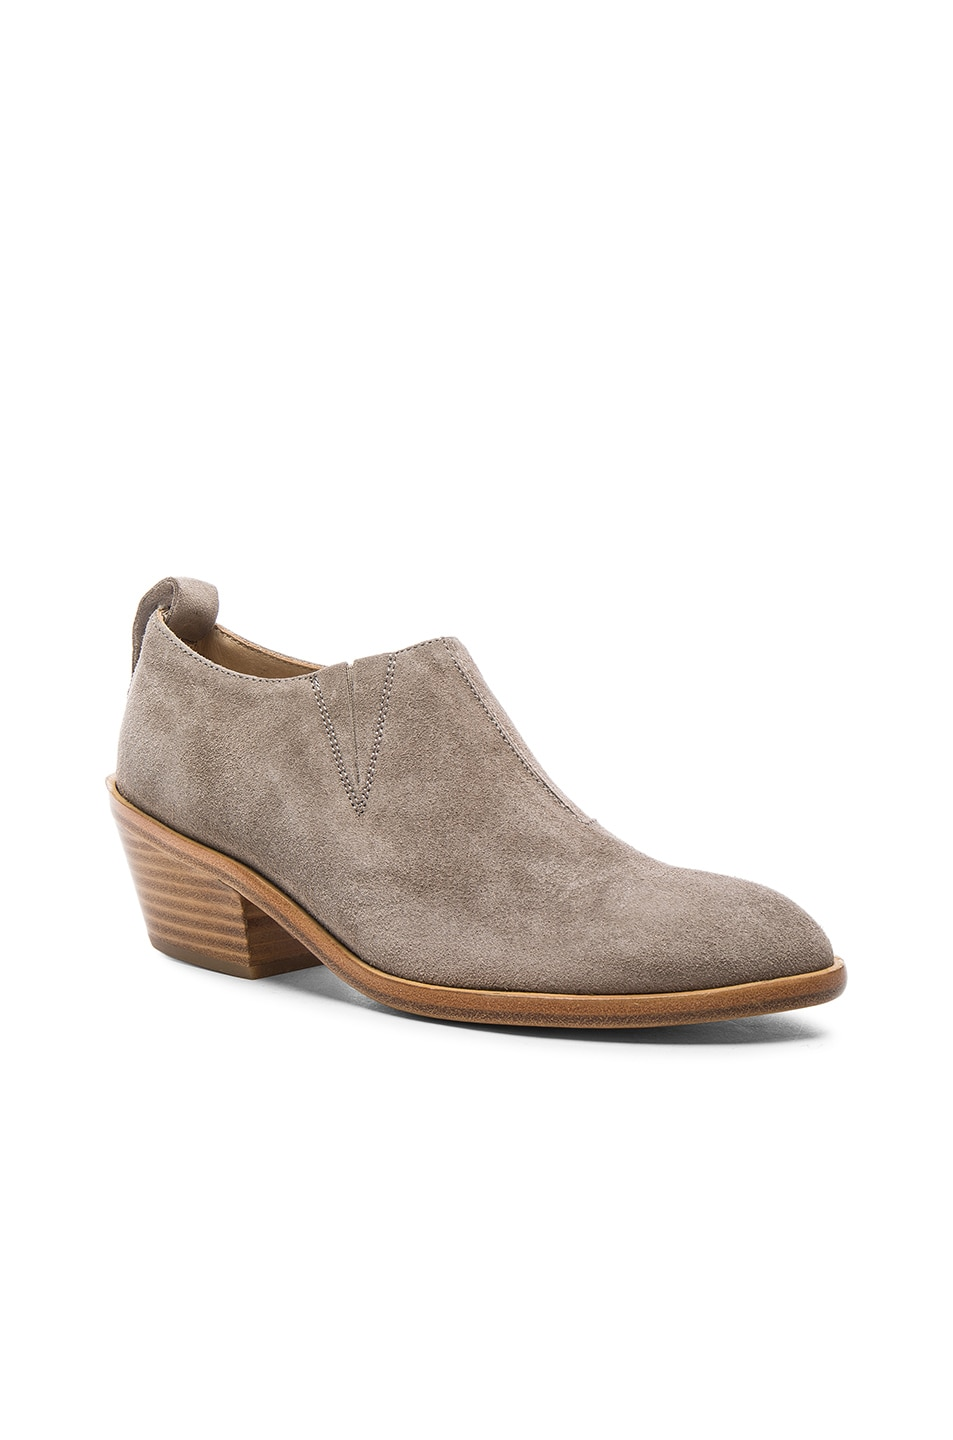 Image 2 of Rag & Bone Suede Thompson Boots in Warm Grey Suede